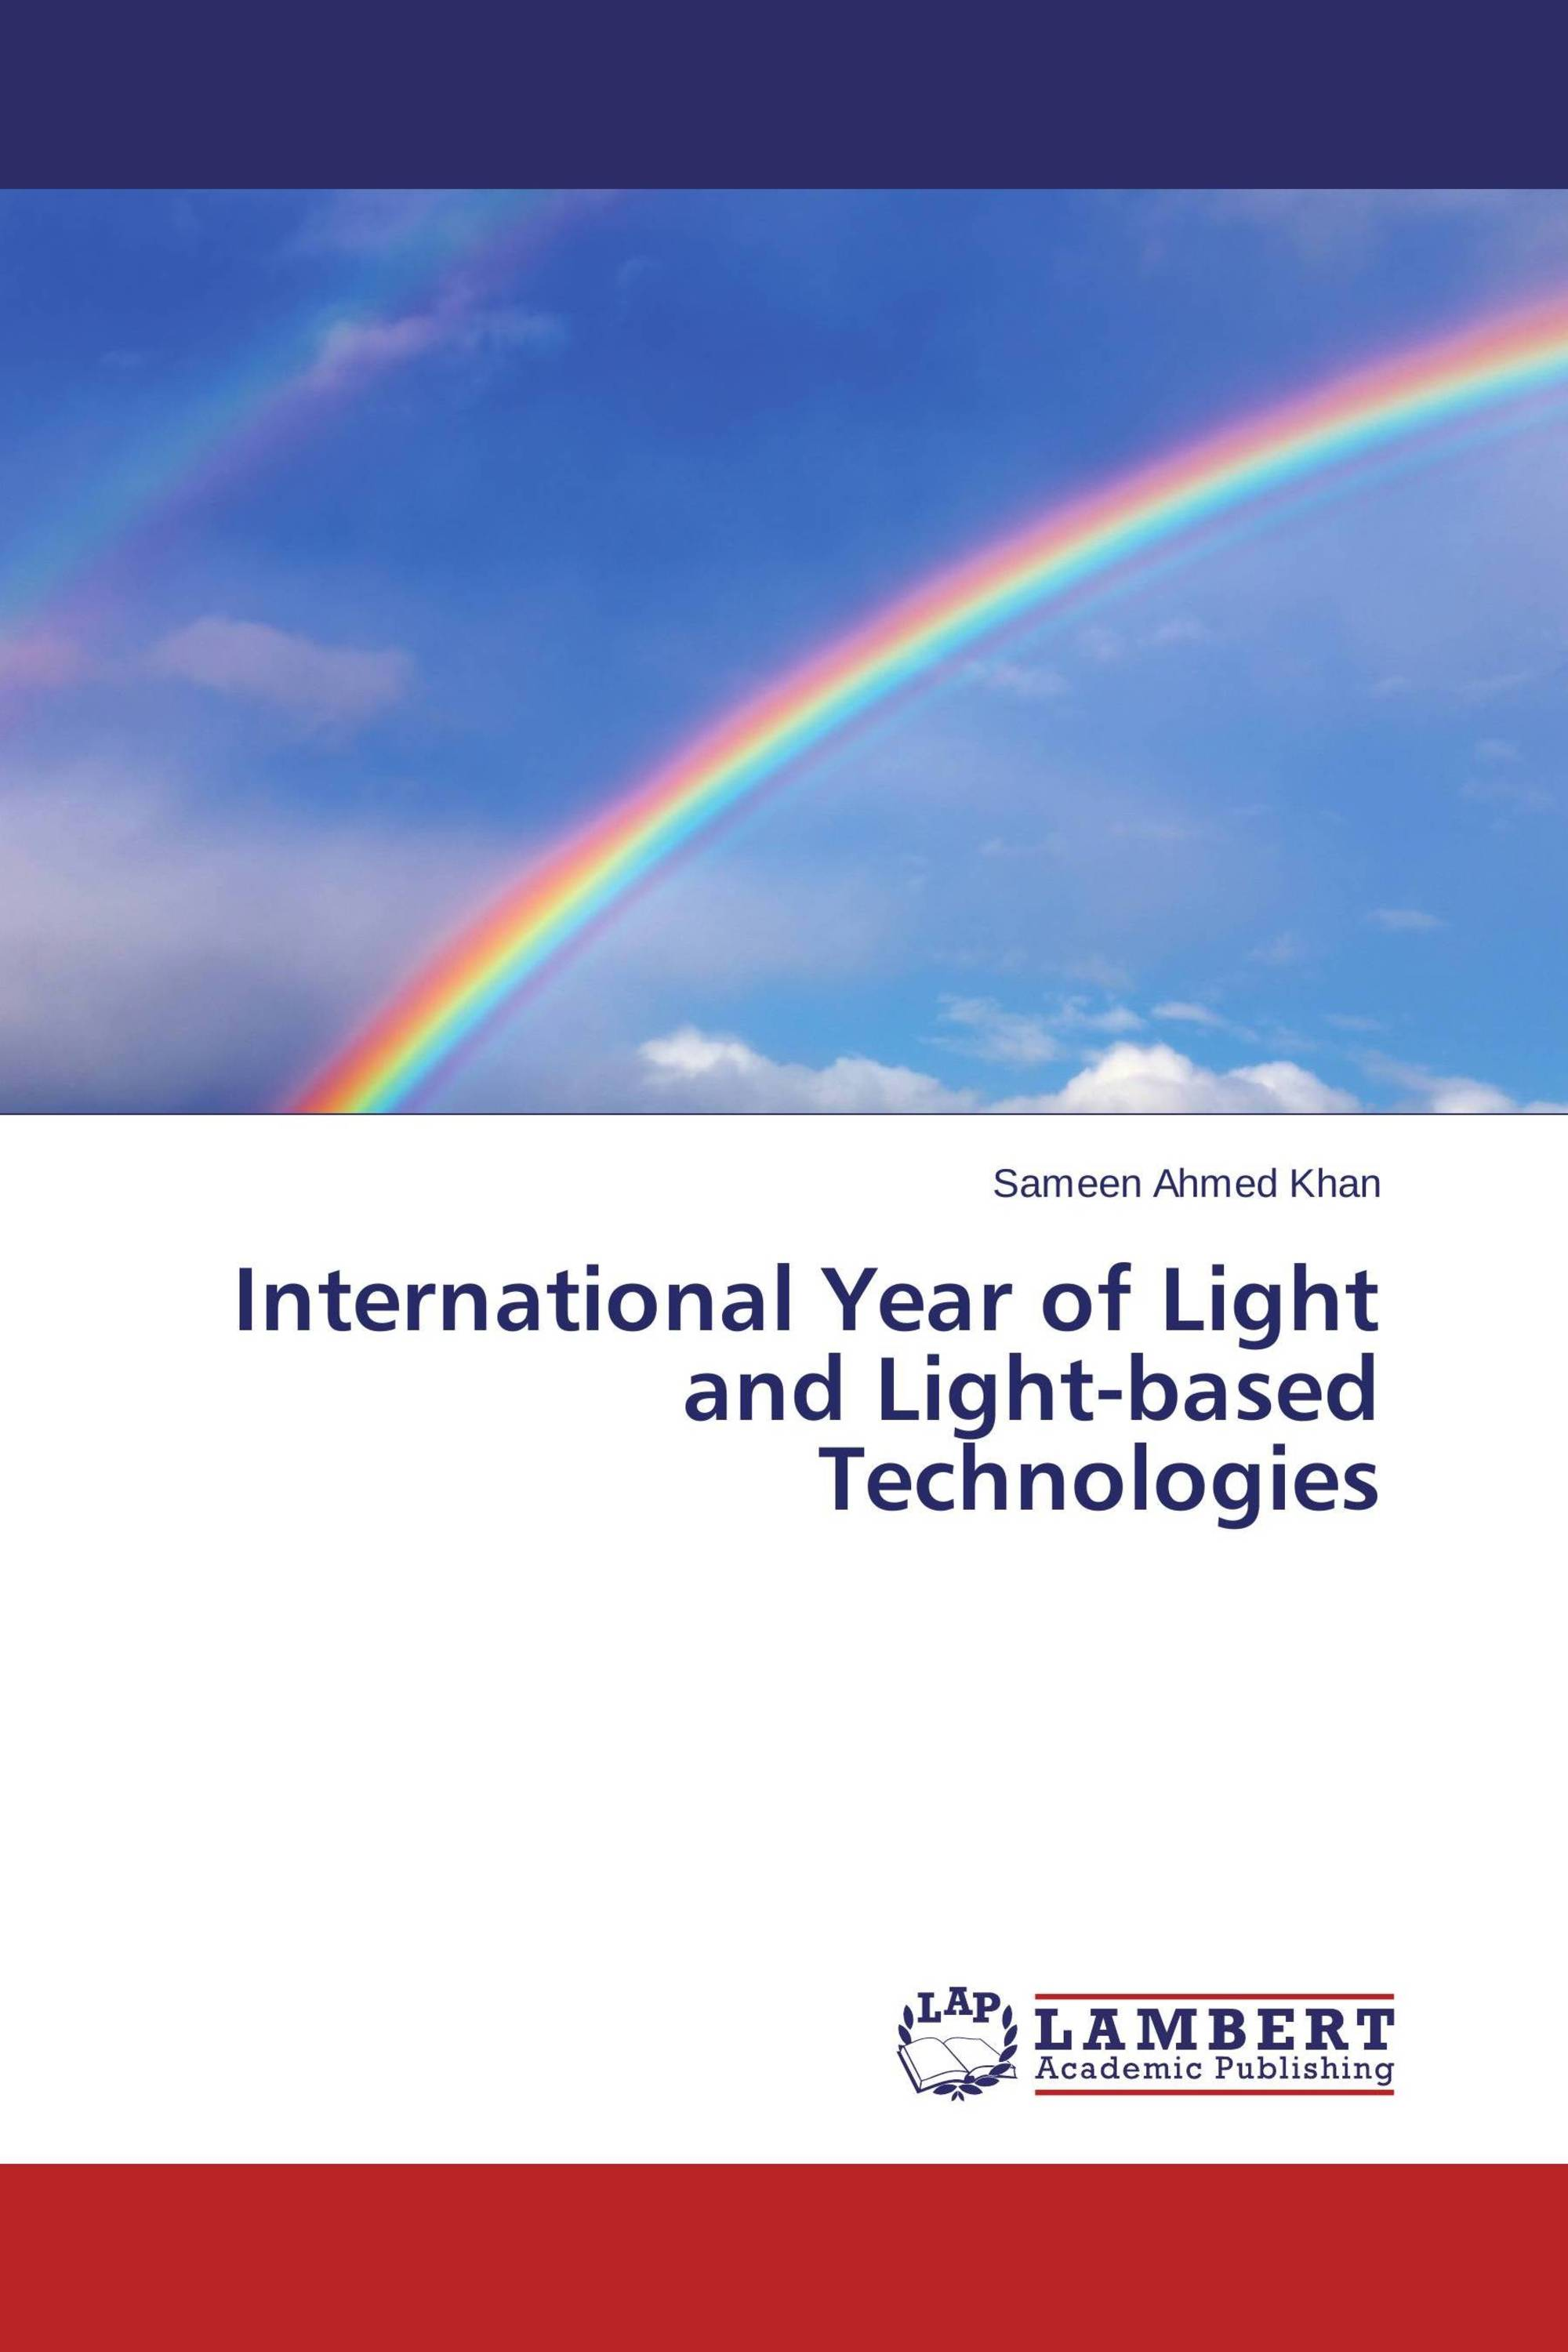 International Year of Light and Light-based Technologies